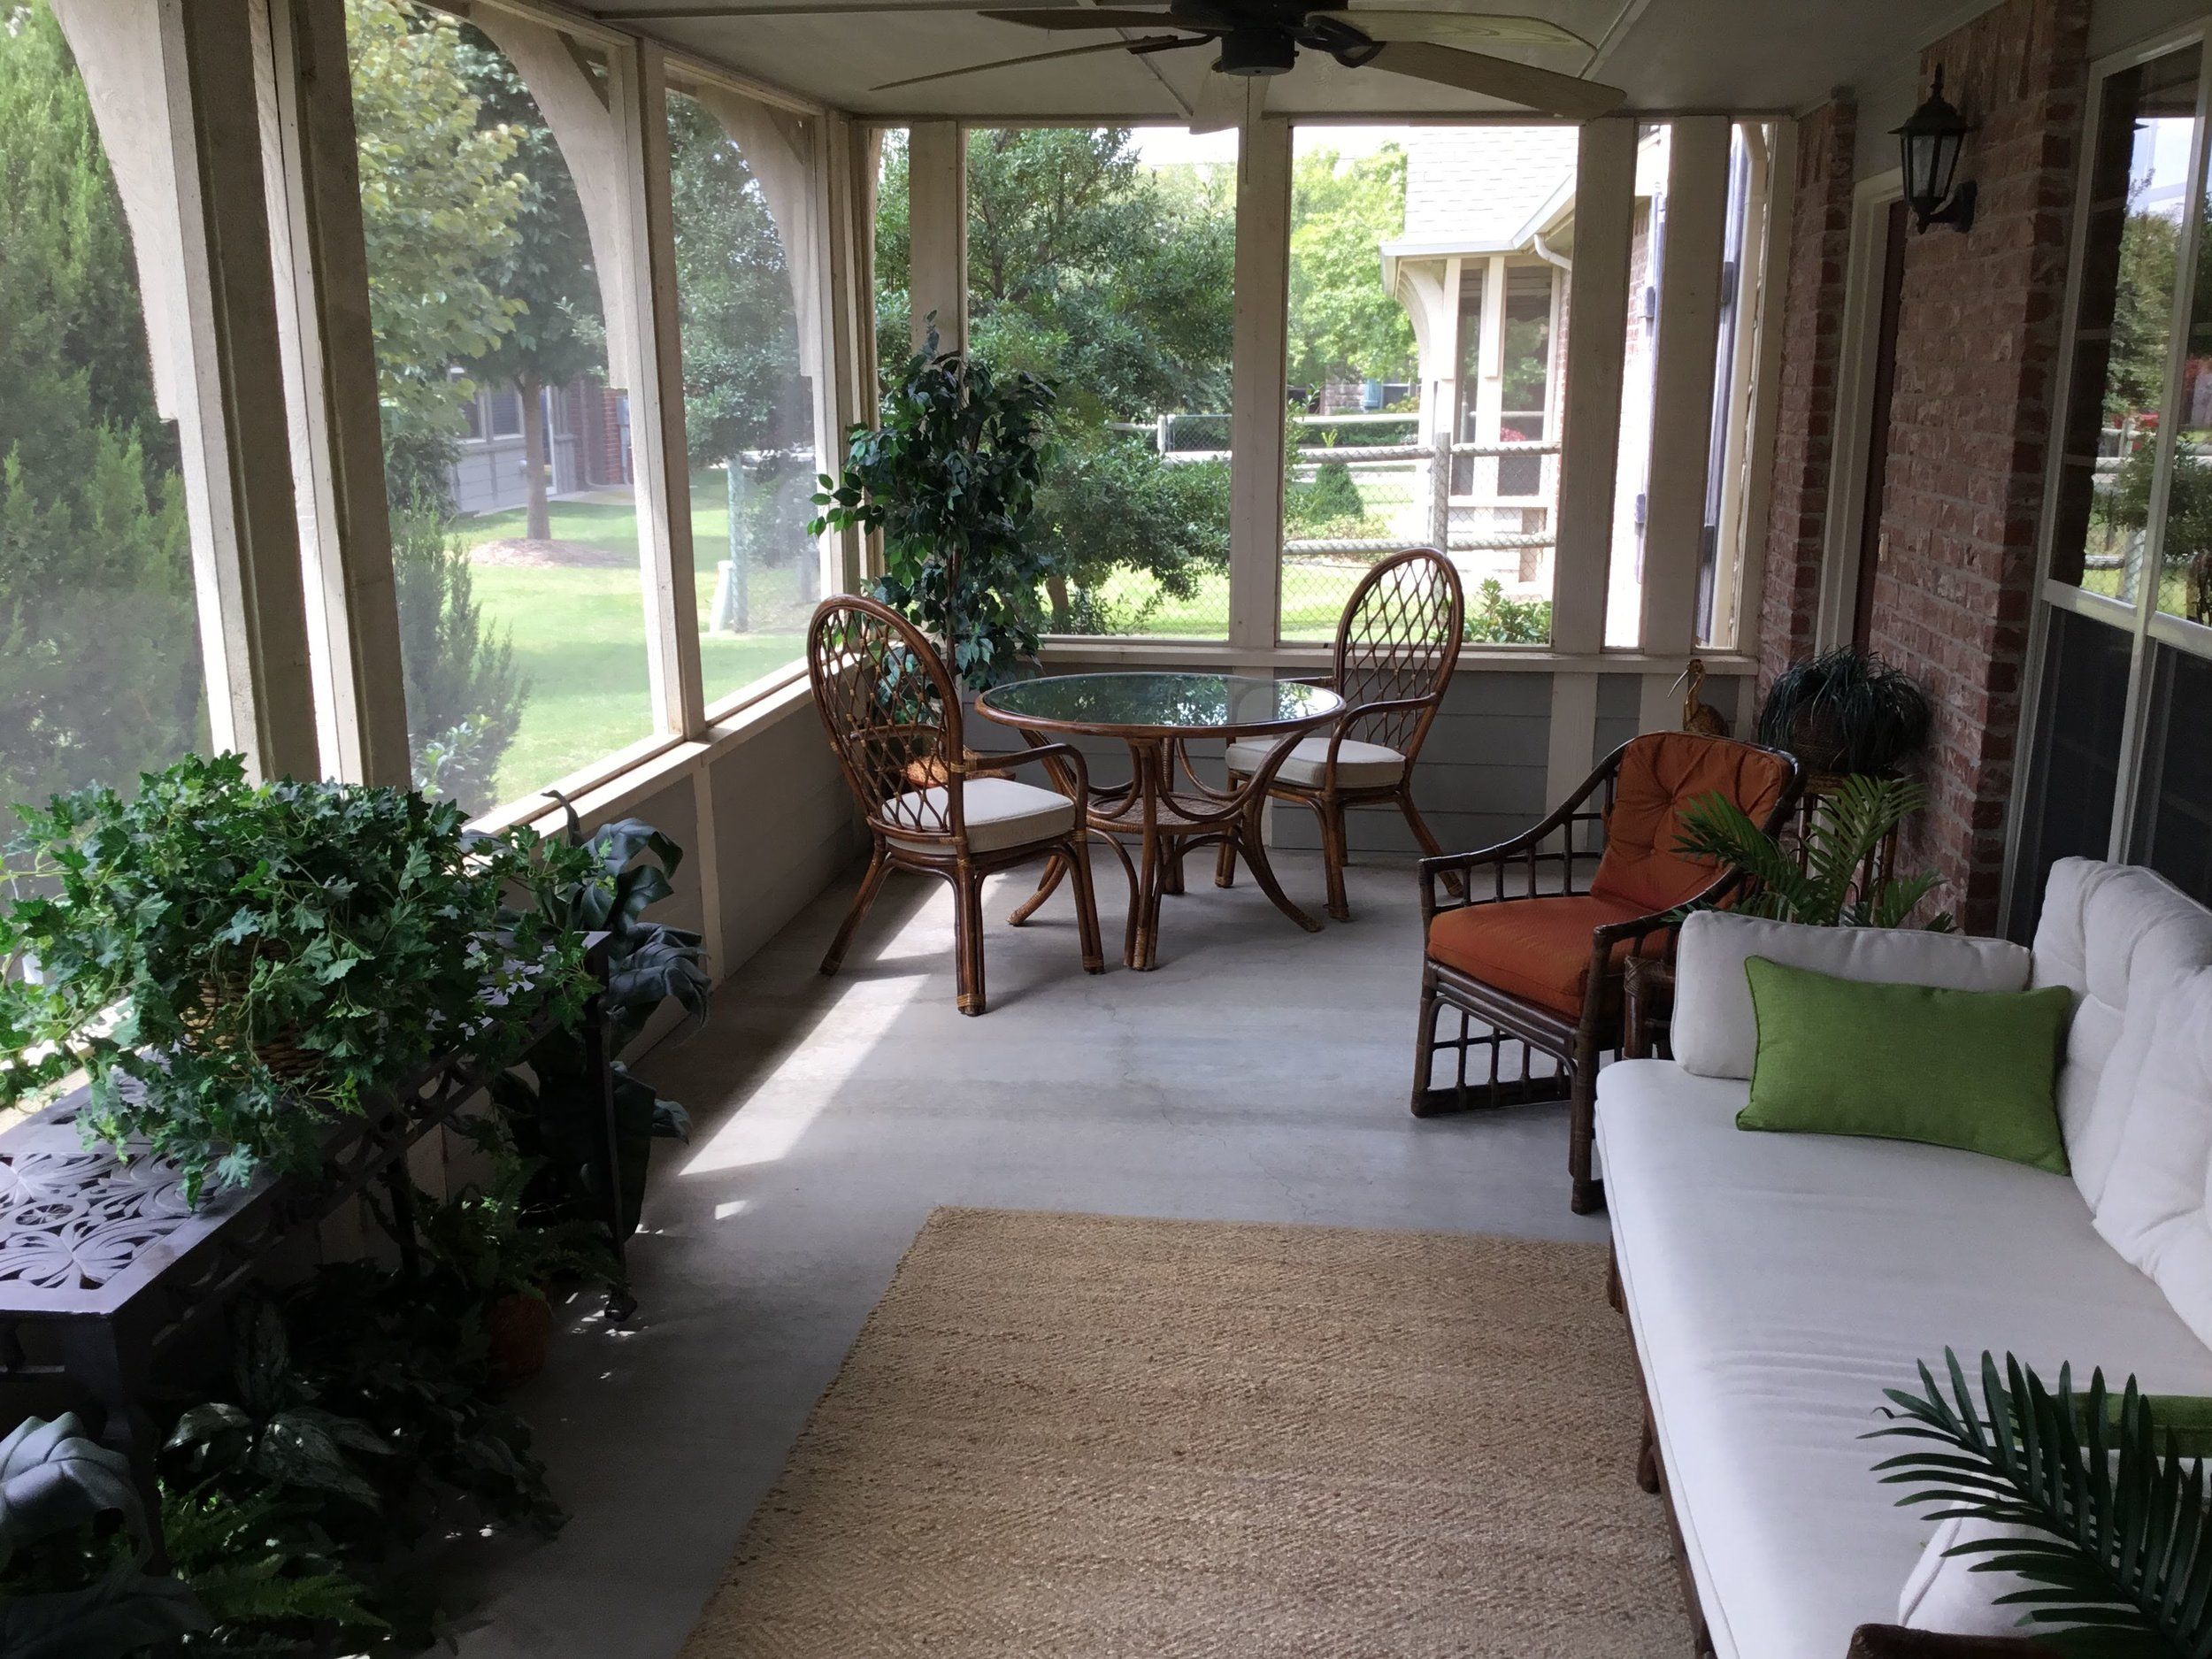 Staging Tulsa - Zarrow Pointe Villas Patio2.jpg